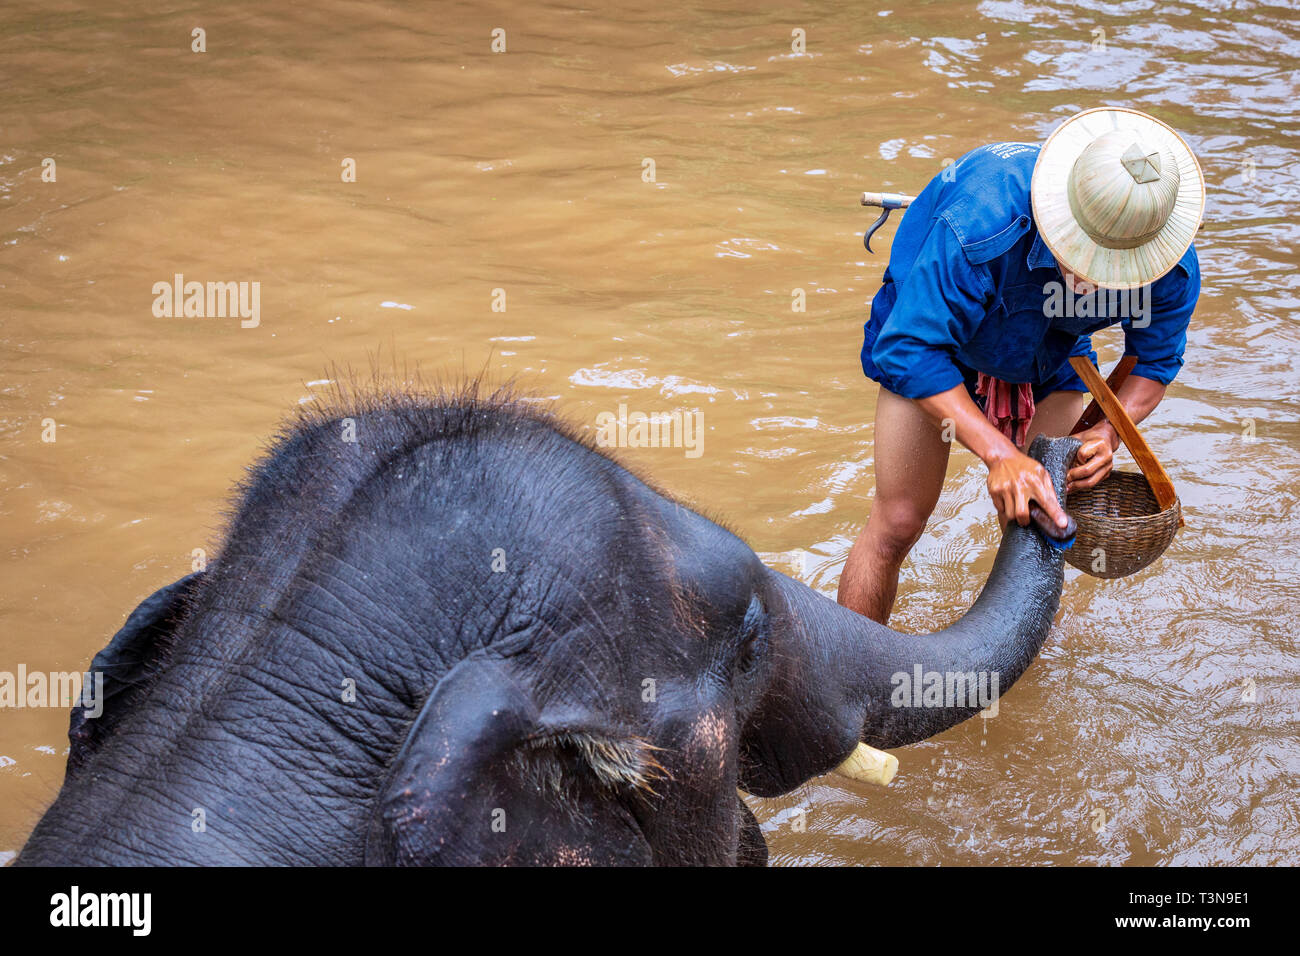 Mahout cleaning a elephant in a river, Chiang Mai, Thailand - Stock Image